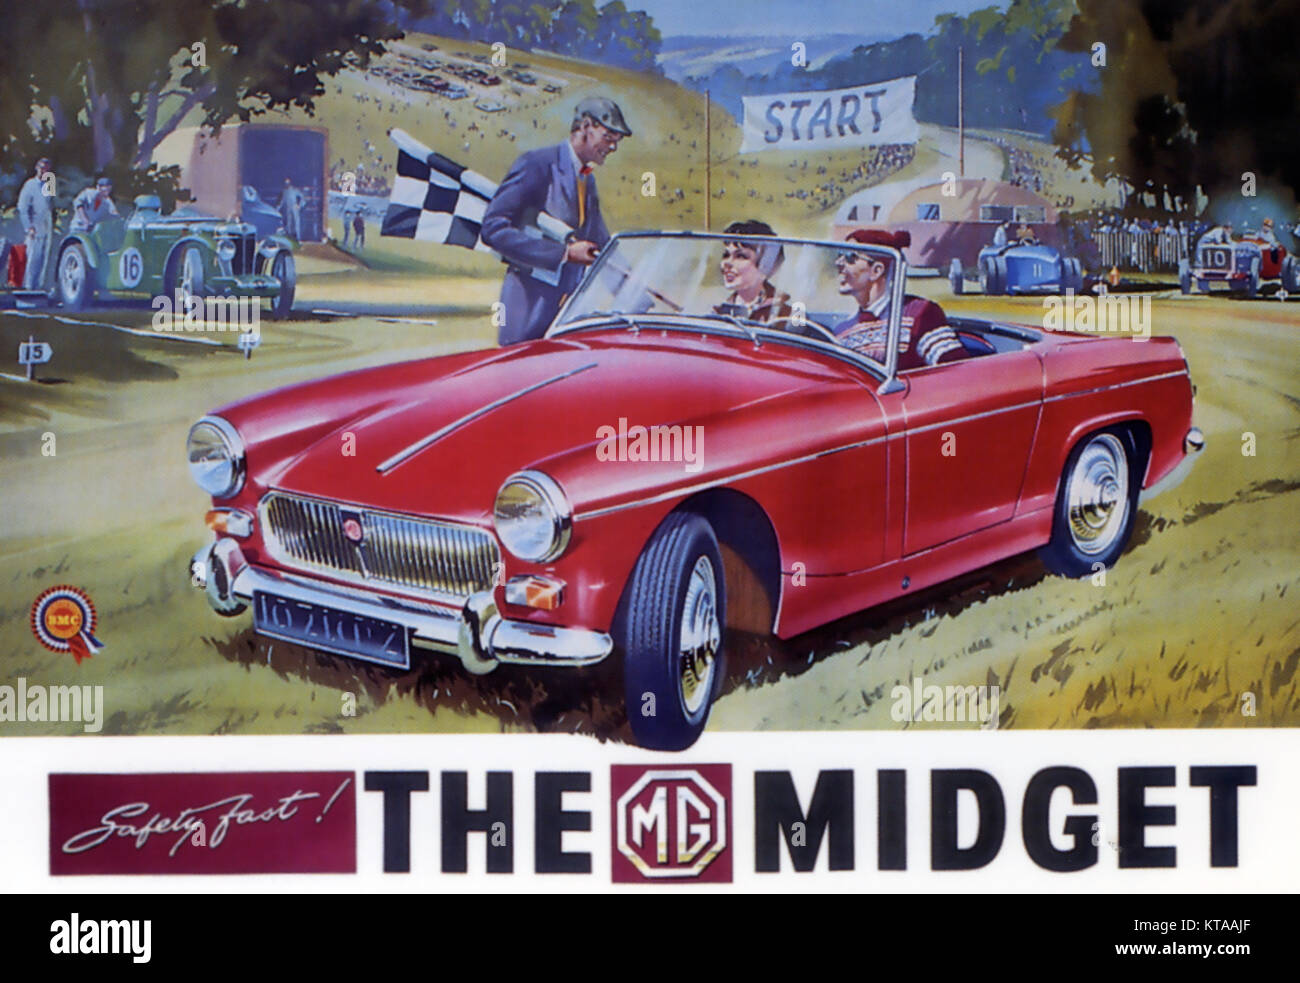 MG MIDGET 1.1 litre sports car in a advert av=bout 1963 - Stock Image